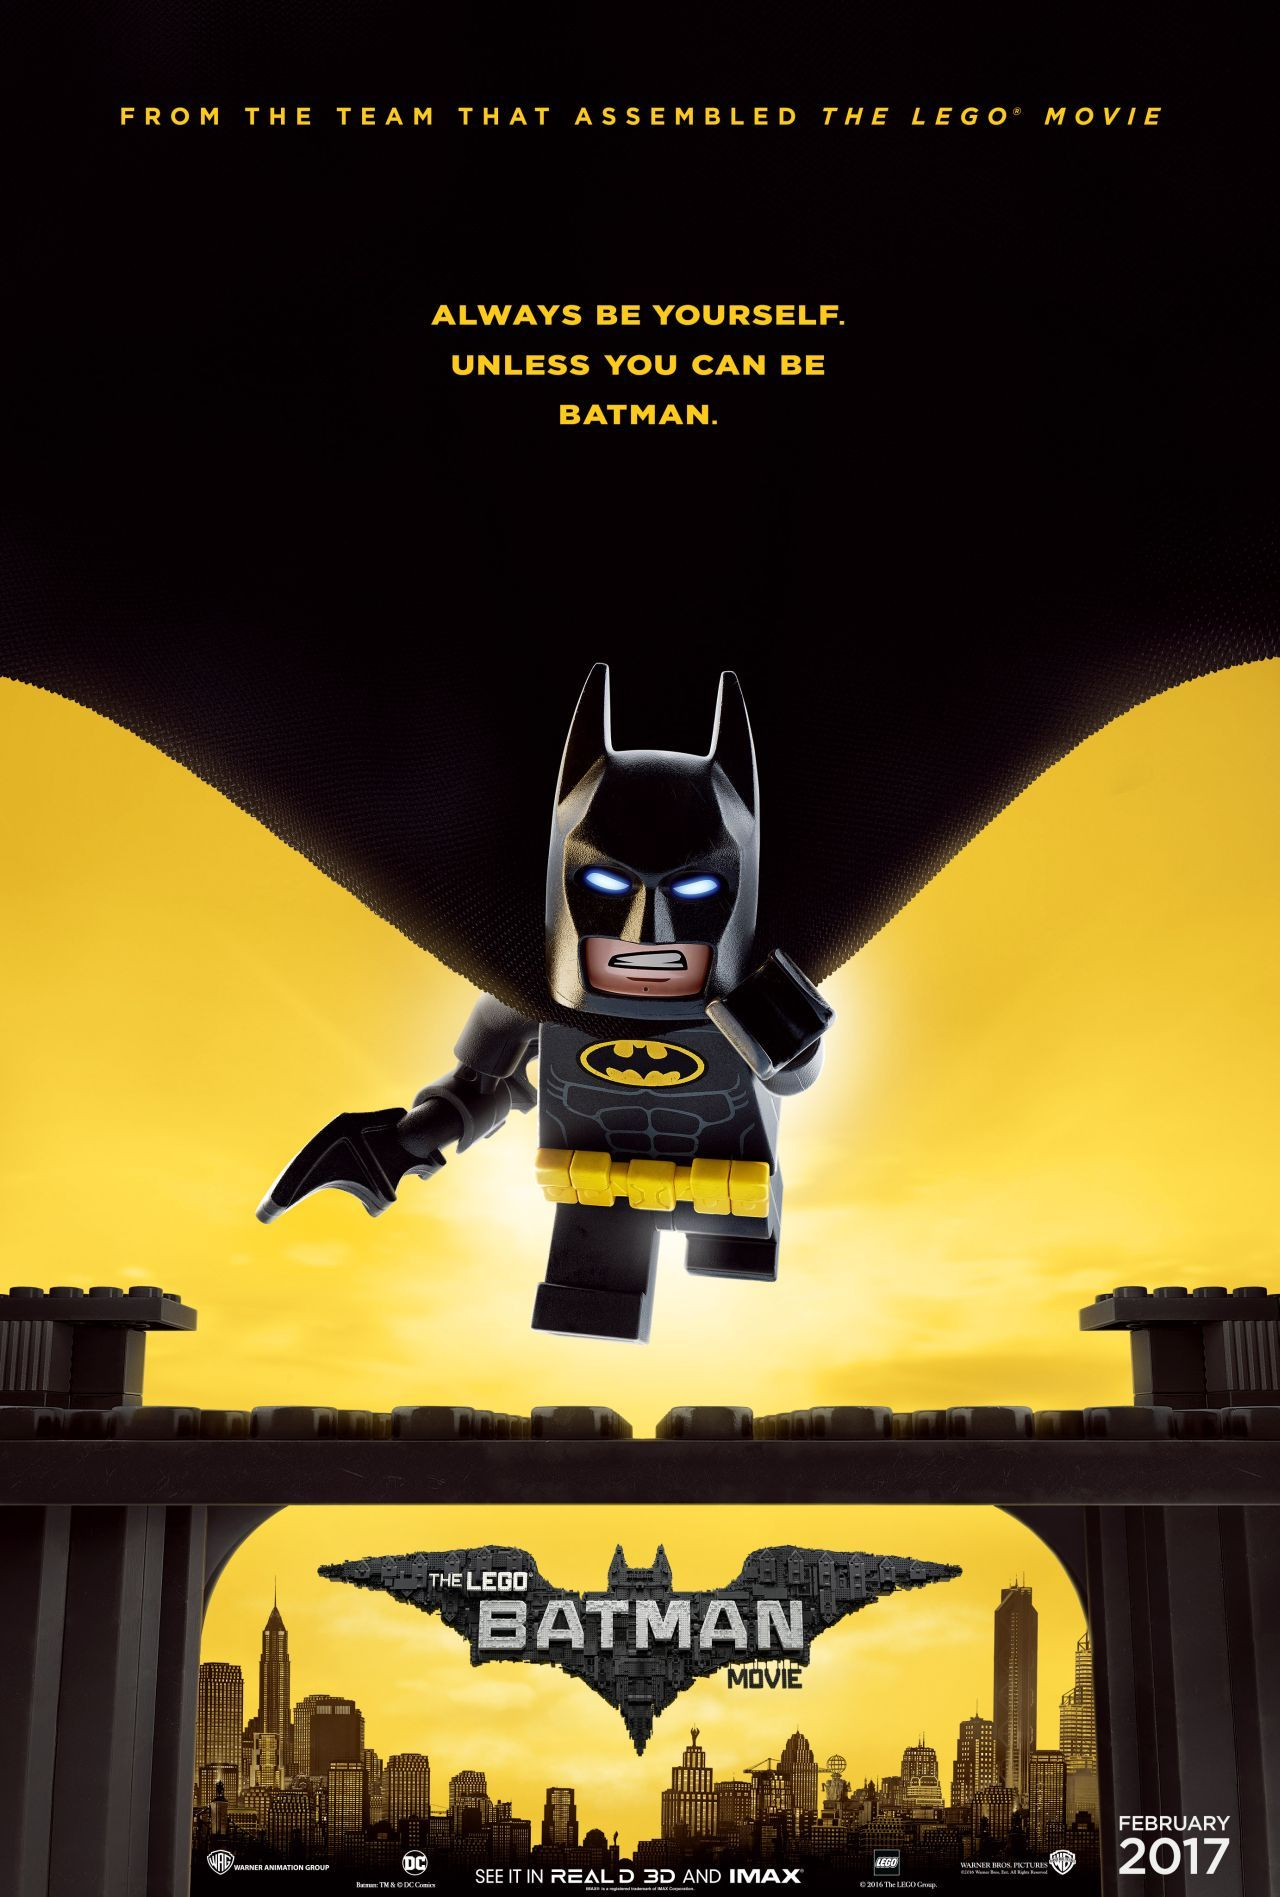 Lego Batman Movie Characters Fill The Latest Poster Com Imagens